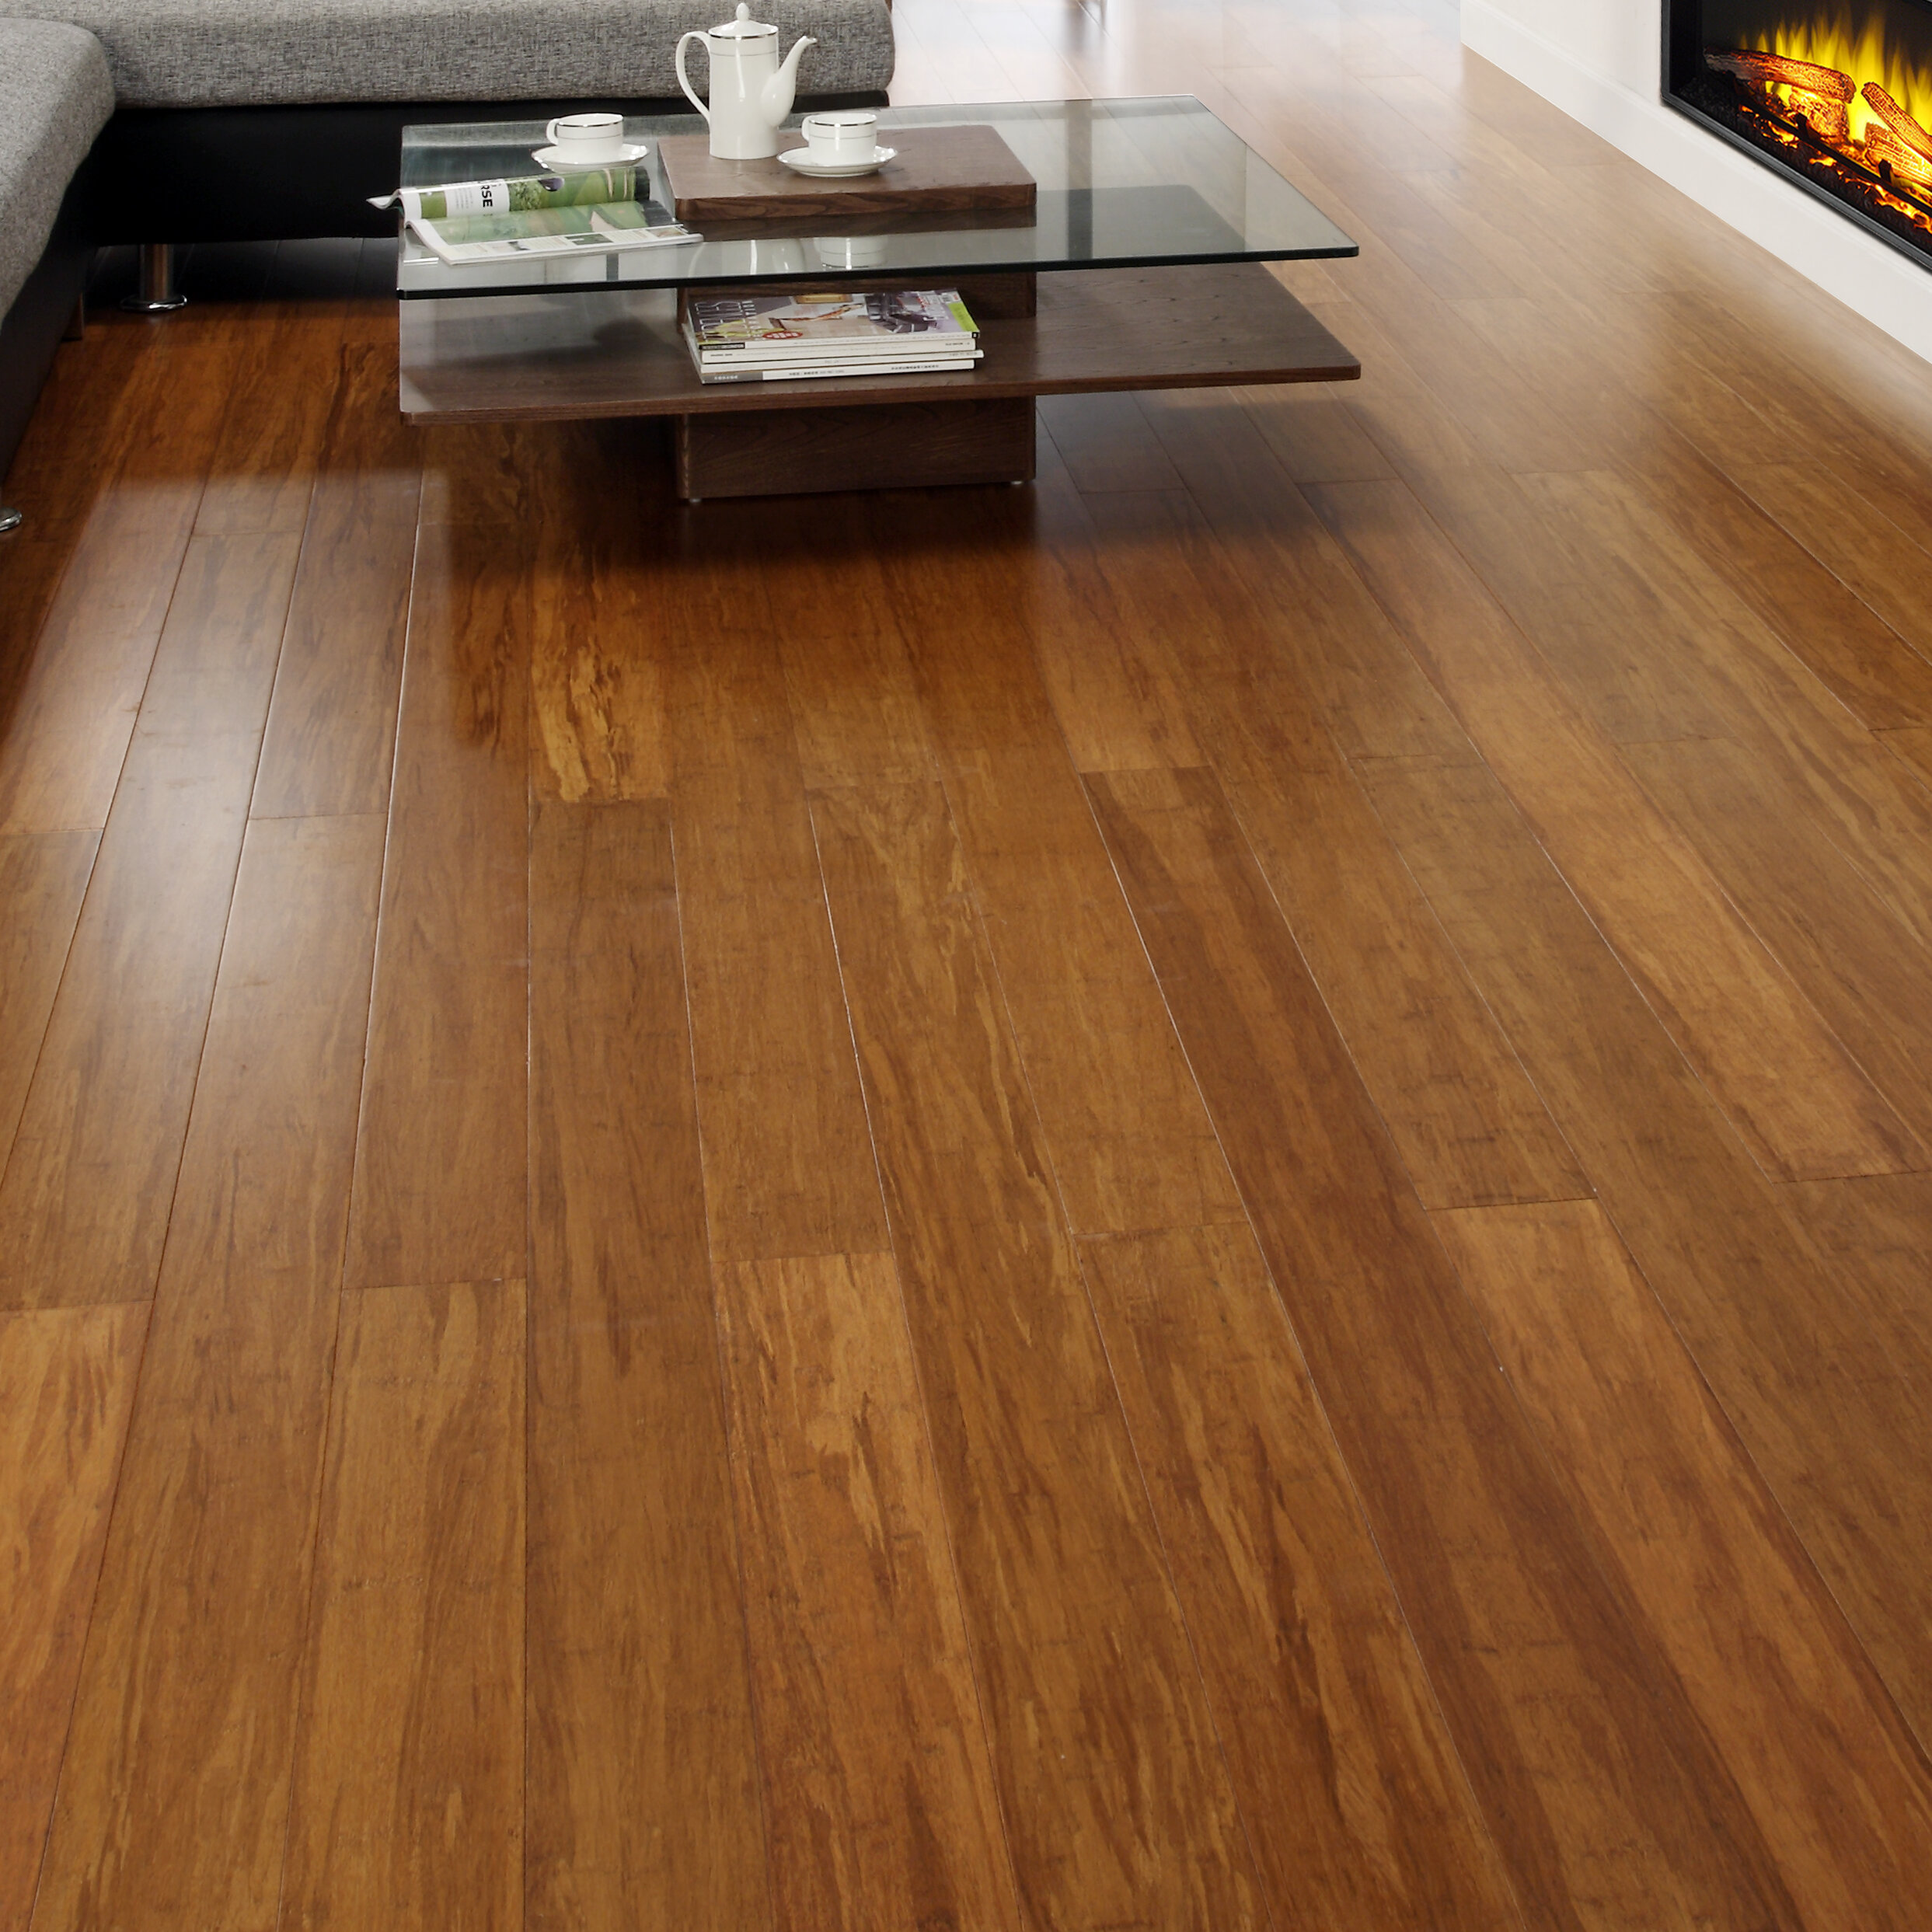 "Easoon USA 5"" Engineered Strand Woven Bamboo Flooring in Caramel"